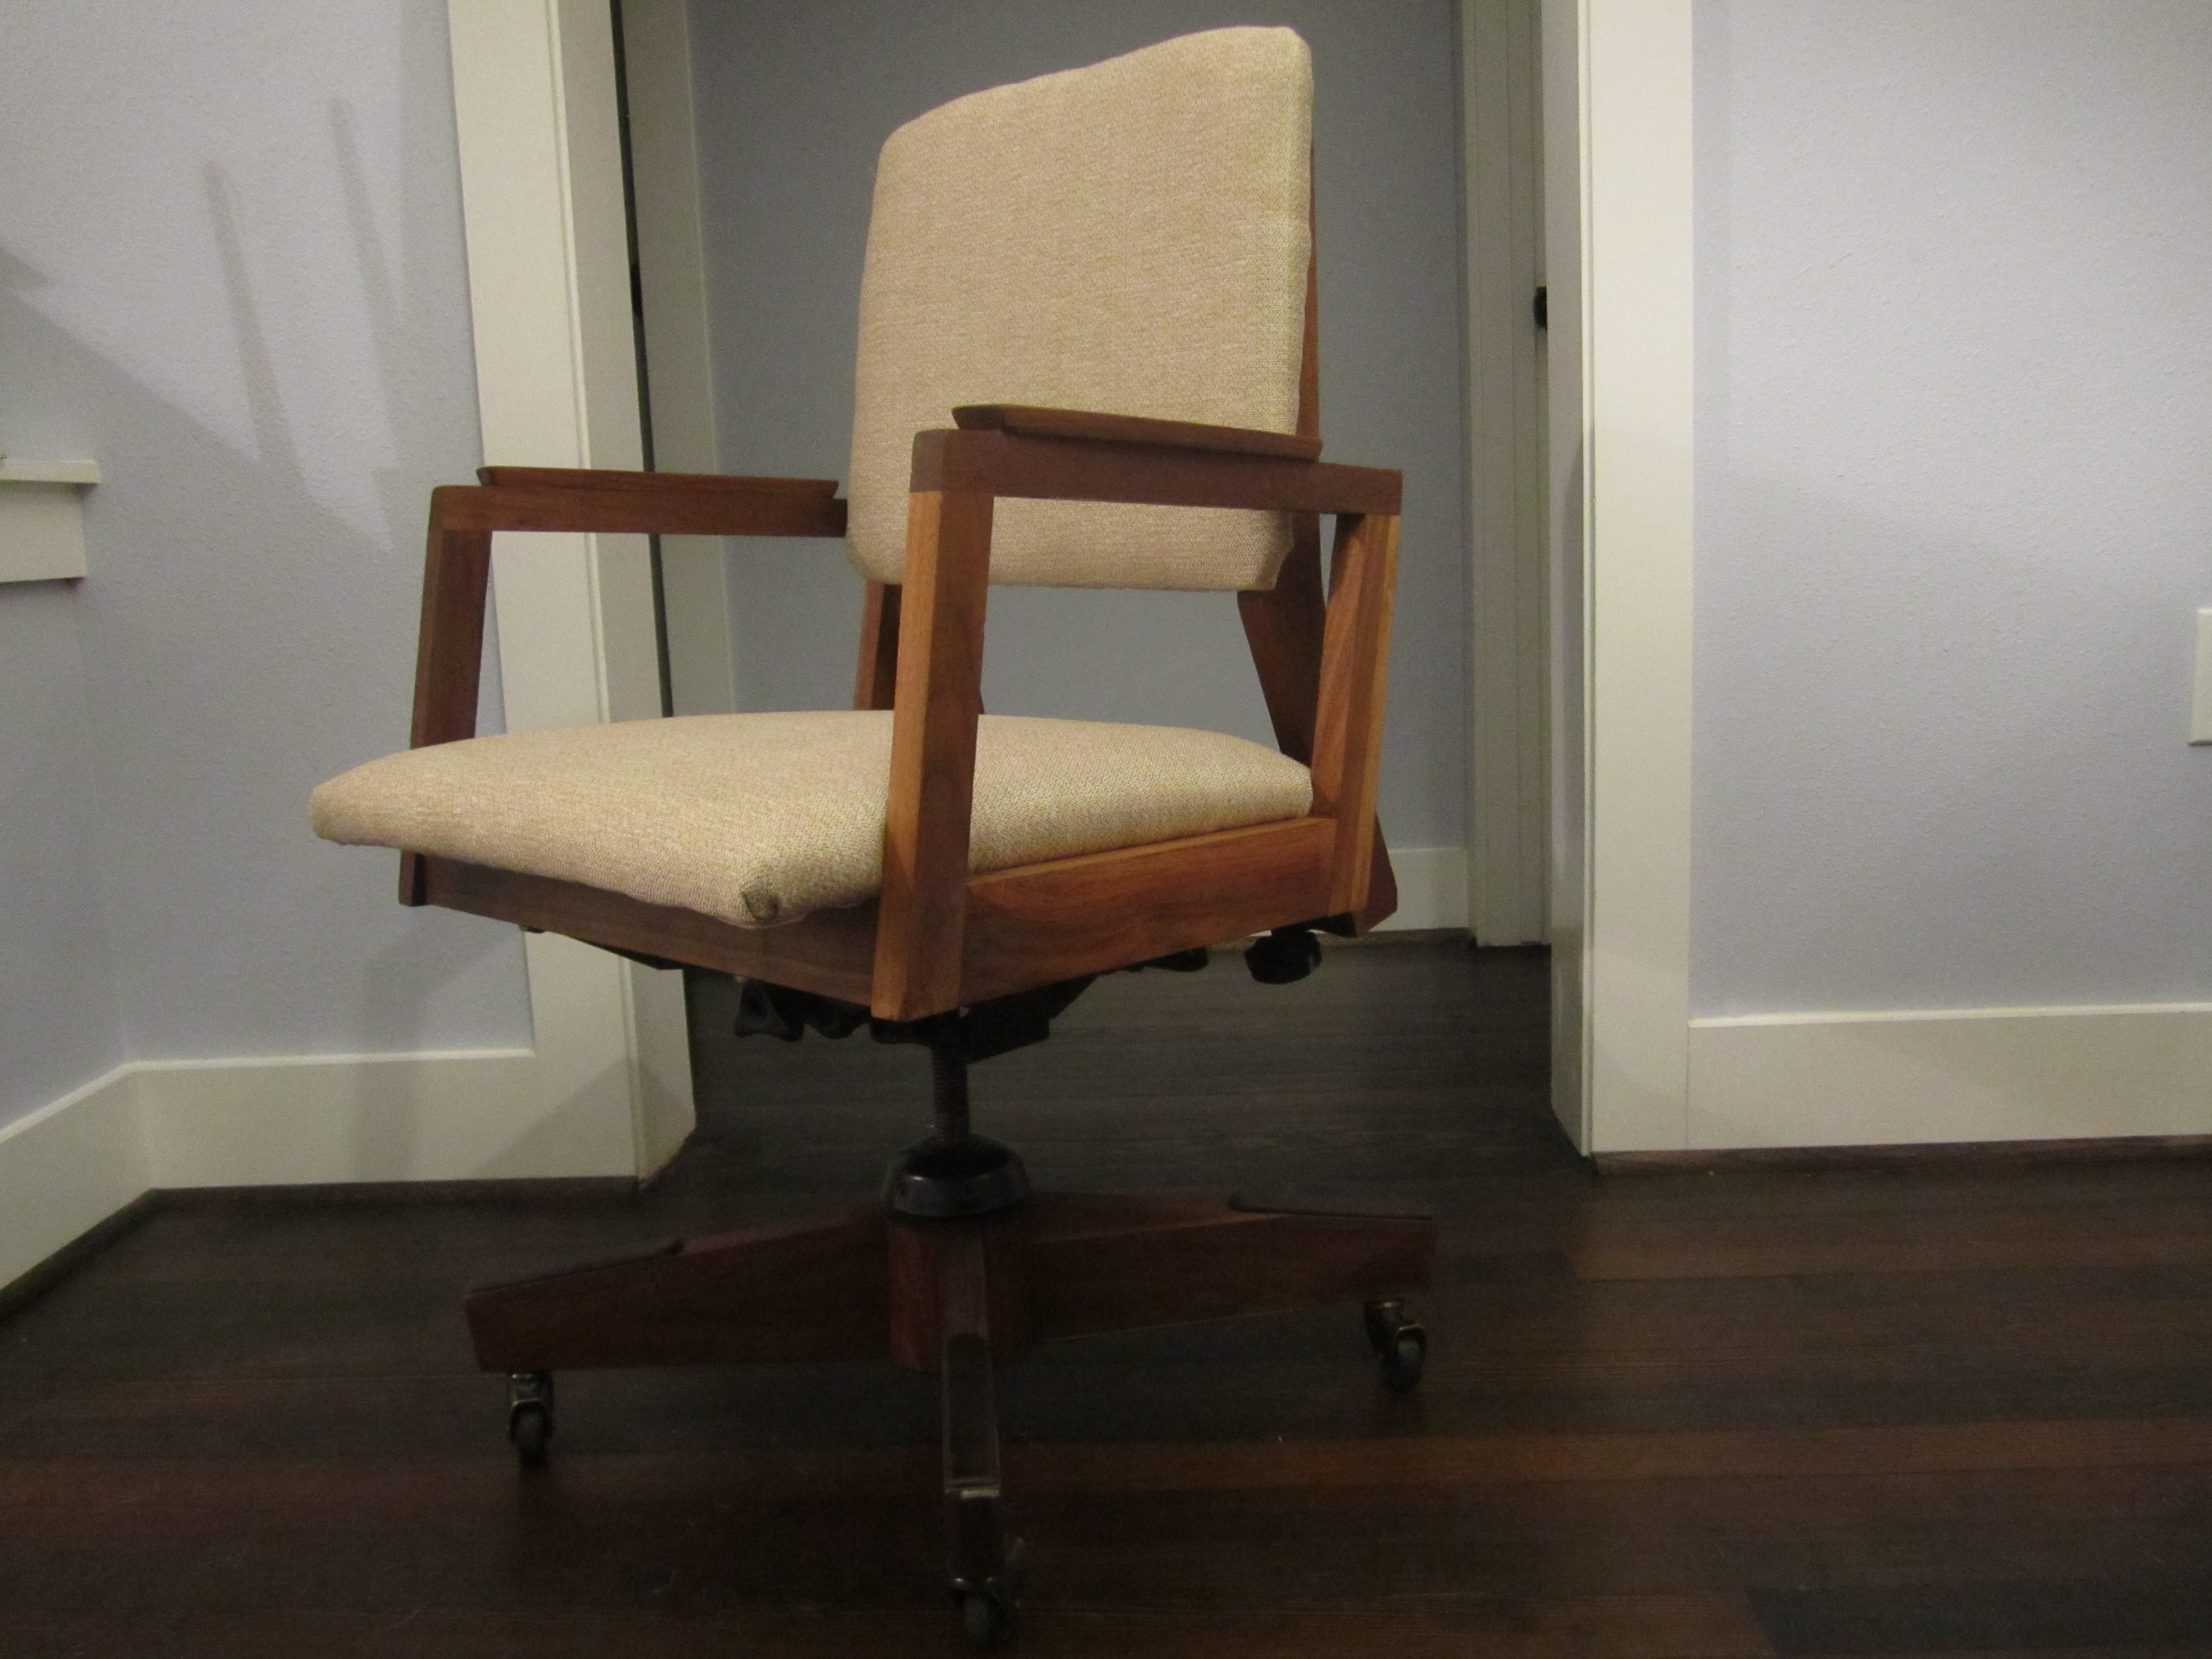 Reupholster Office Chair How Hard Is It To Reupholster An Antique Office Chair T